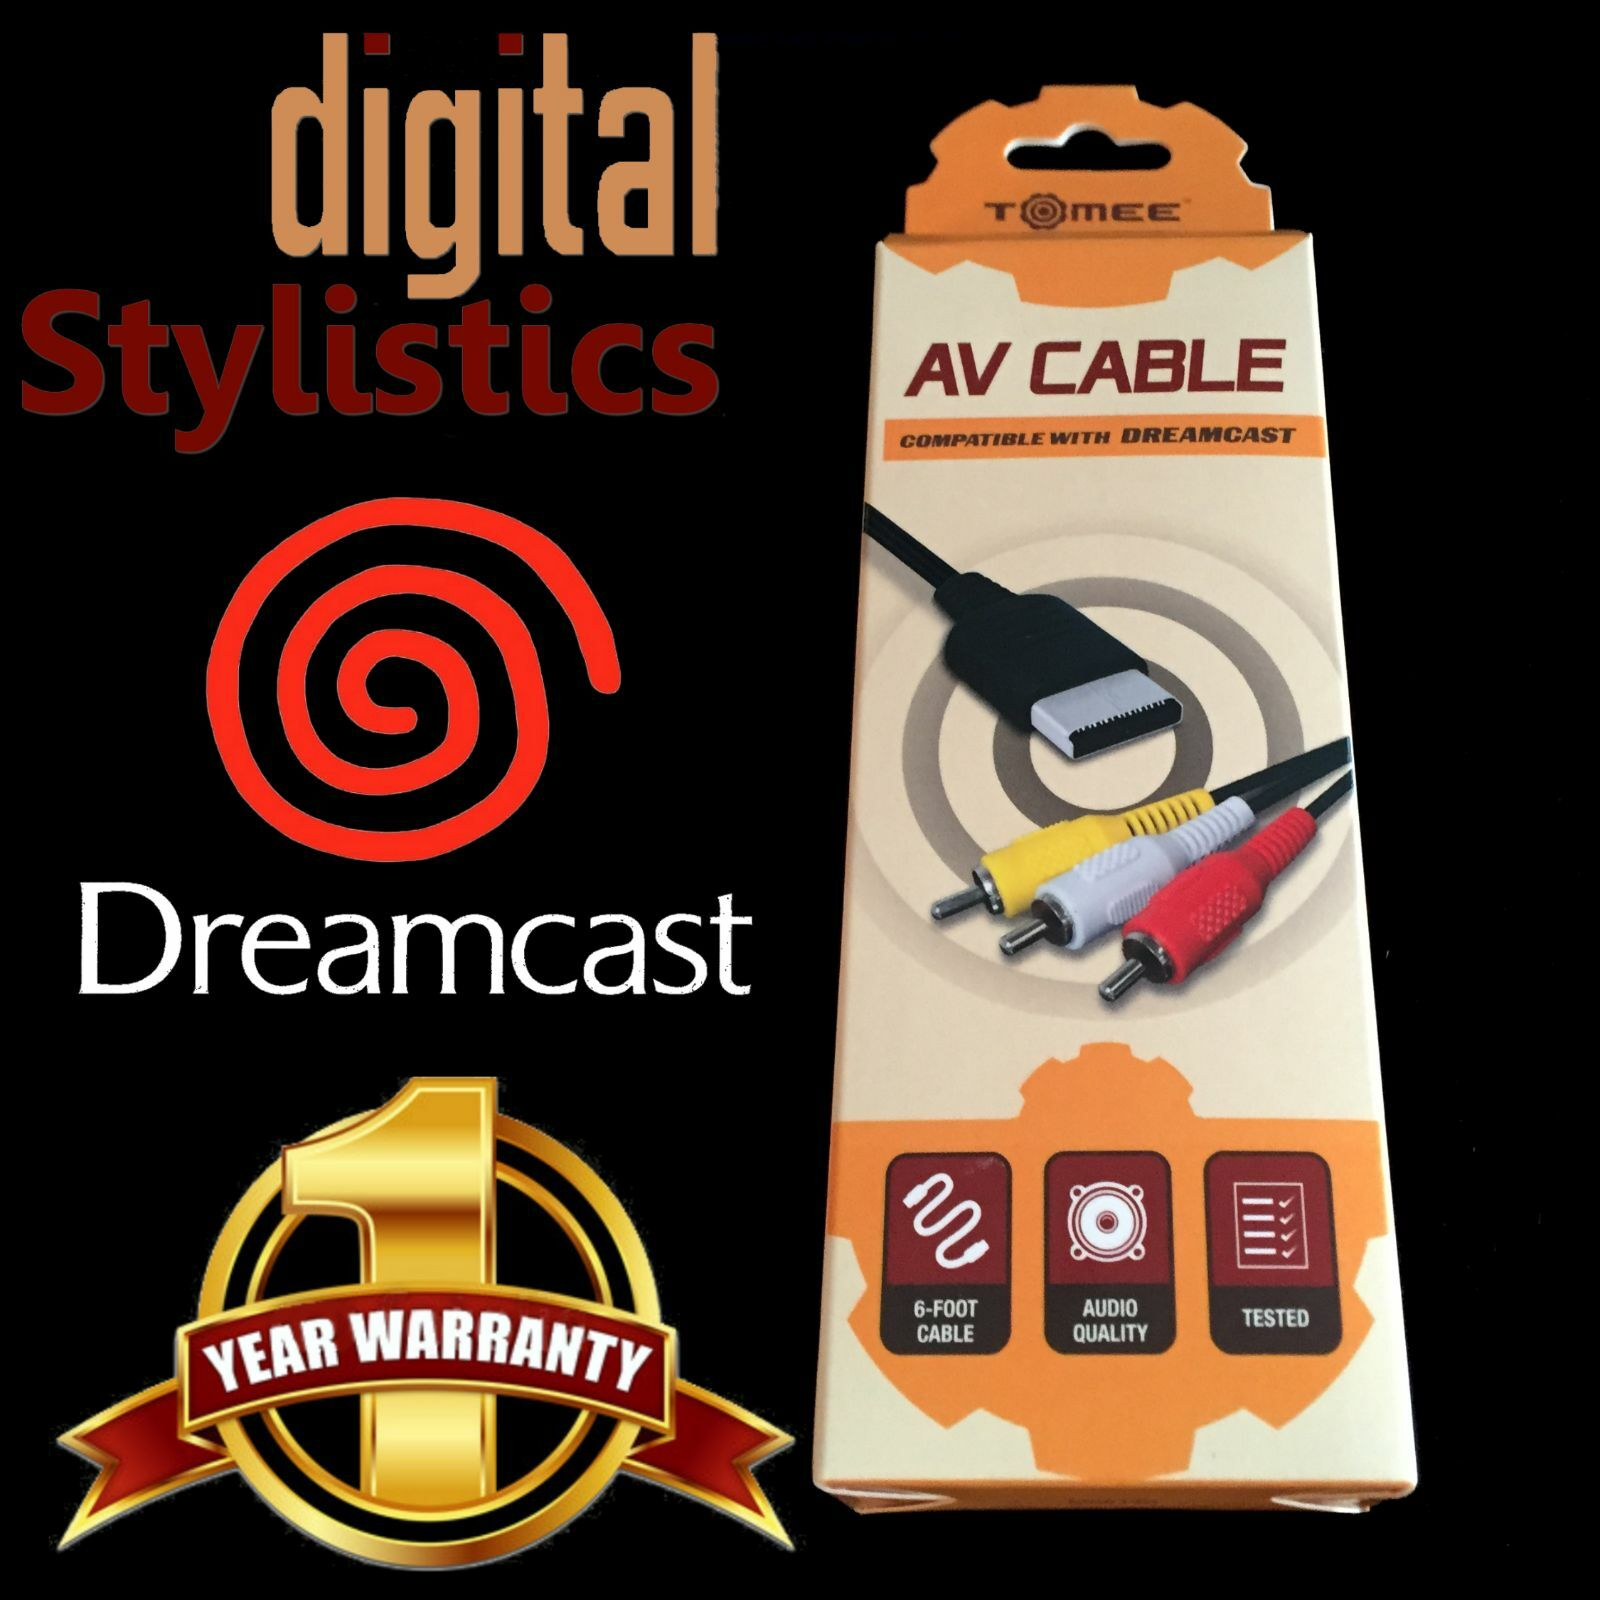 Купить Tomee DSI-M05140 - A/V Cable Cord (NEW) Sega Dreamcast (AV Audio Video) NIB Sealed Retail Packaging